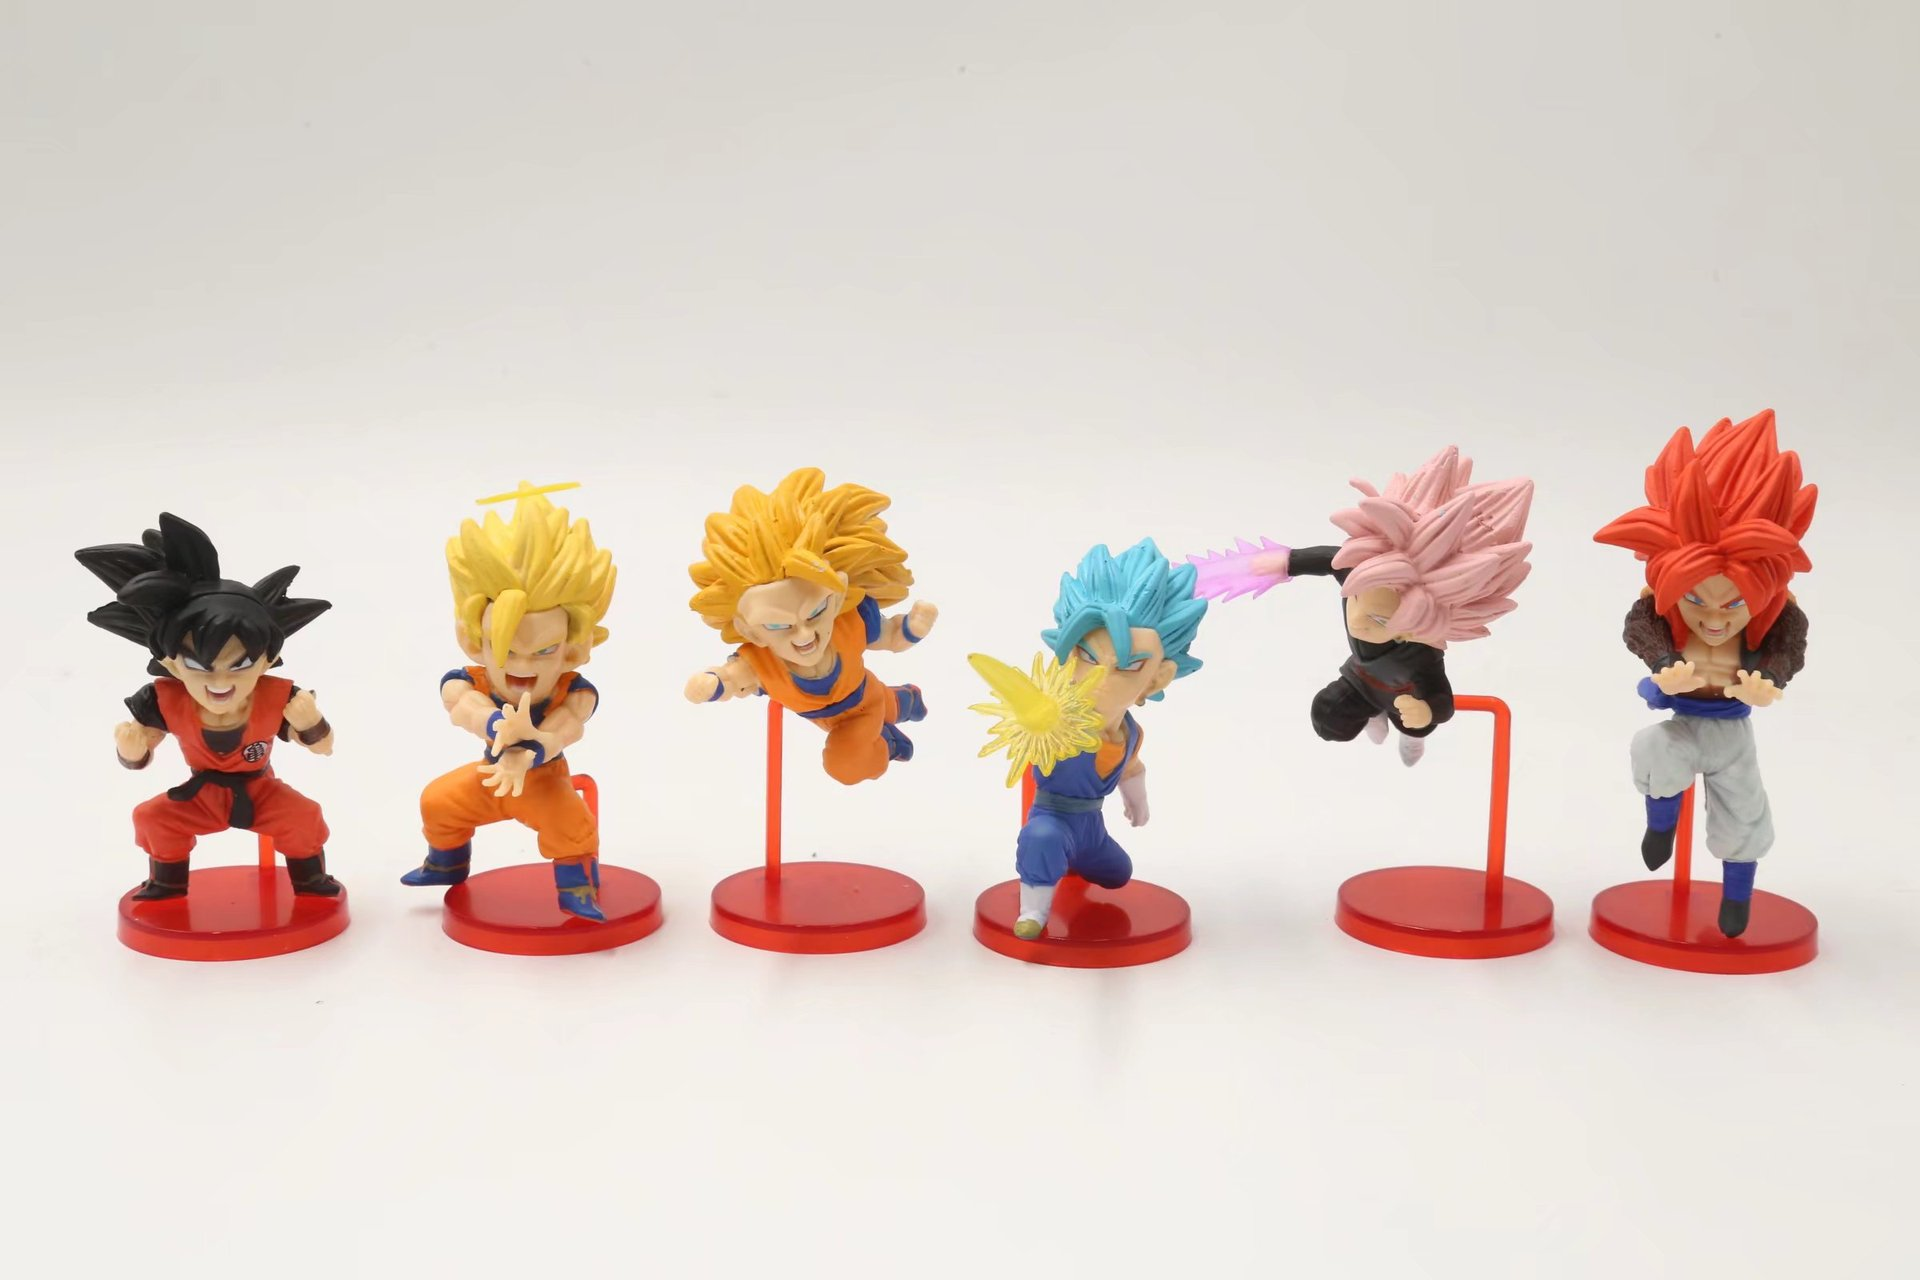 Dragon Ball Super vol.6 Son Gohan Goku Black Trunks Mai Zamasu PVC Figures Collectible Model Toys 6pcs/set 8cm